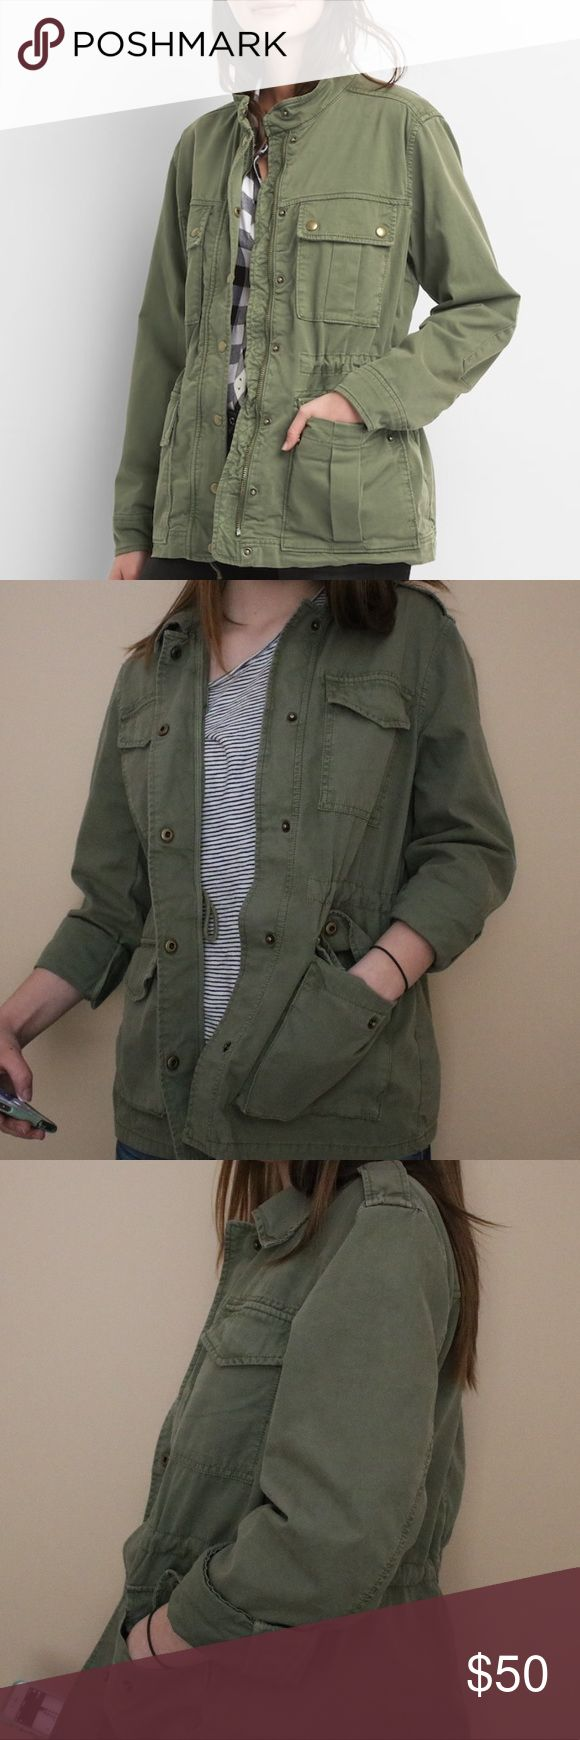 GAP Jacket GAP, green army jacket. Can tighten waist, snap buttons, and pockets. Slightly different than model pictures - added details on shoulders, no zipper, and no visible buttons on pockets. Barely worn! GAP Jackets & Coats Utility Jackets